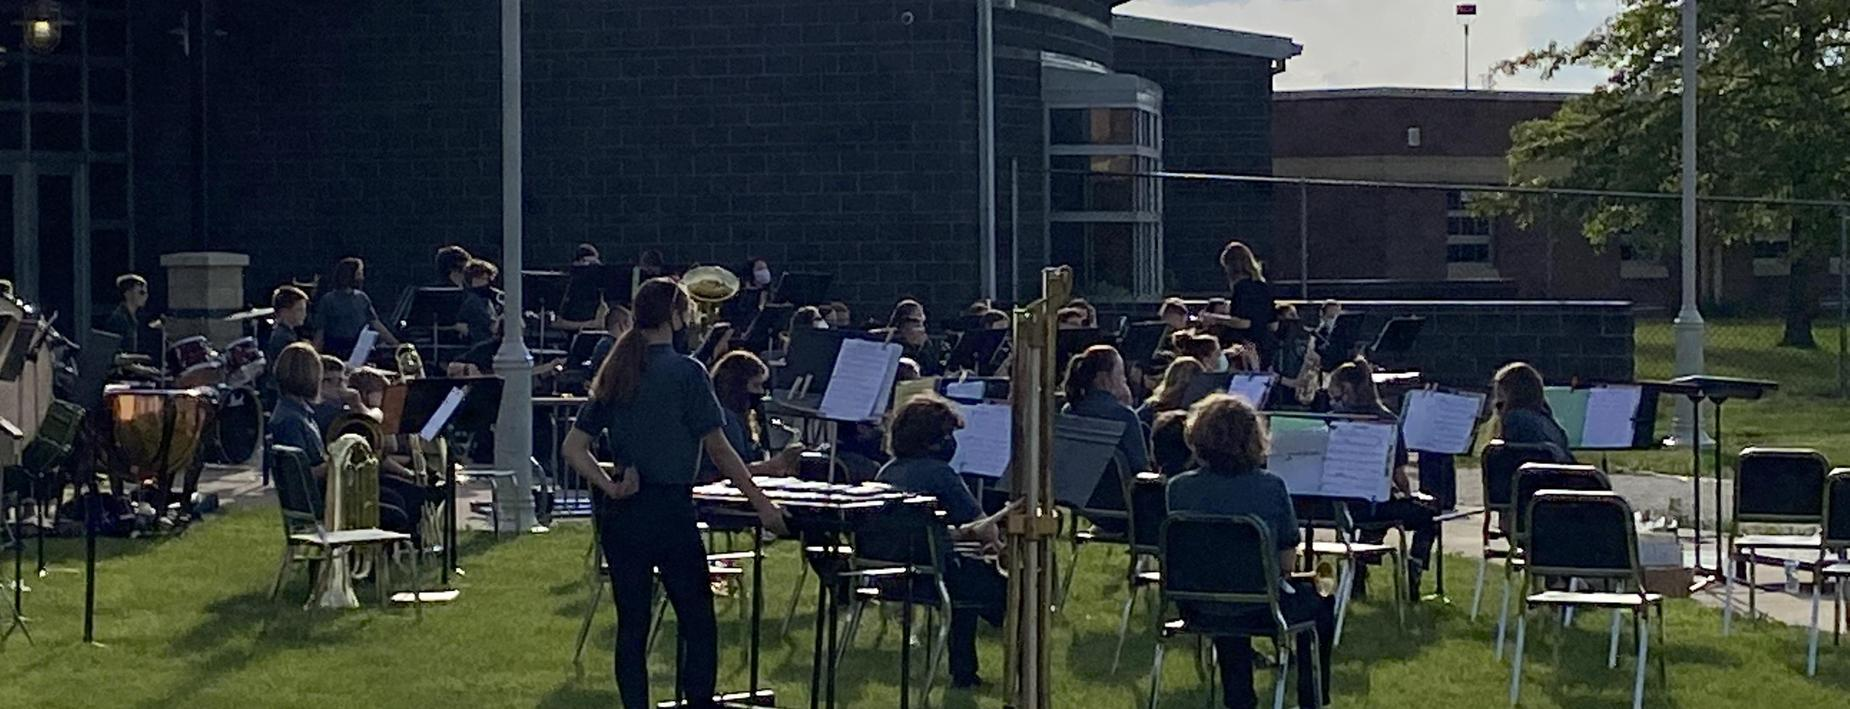 CCMS band concert